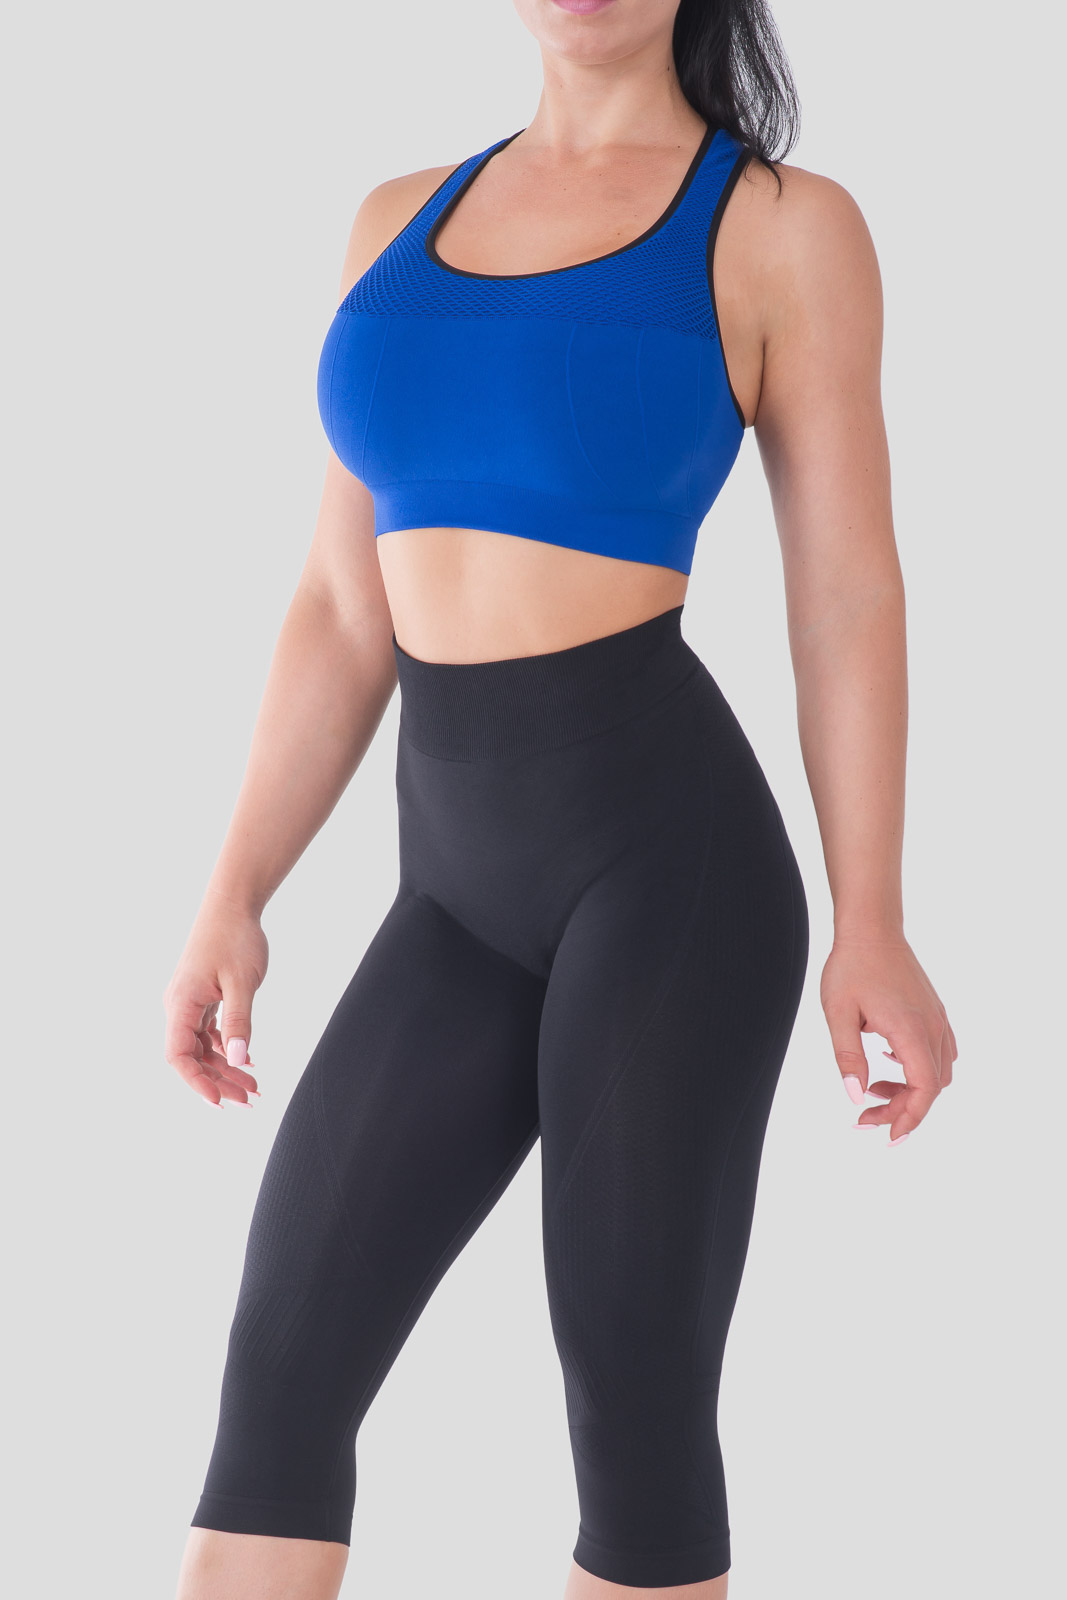 Bellissima-Women-039-s-Capri-Yoga-Pants-Seamless-High-Waisted-Workout-Leggings thumbnail 21